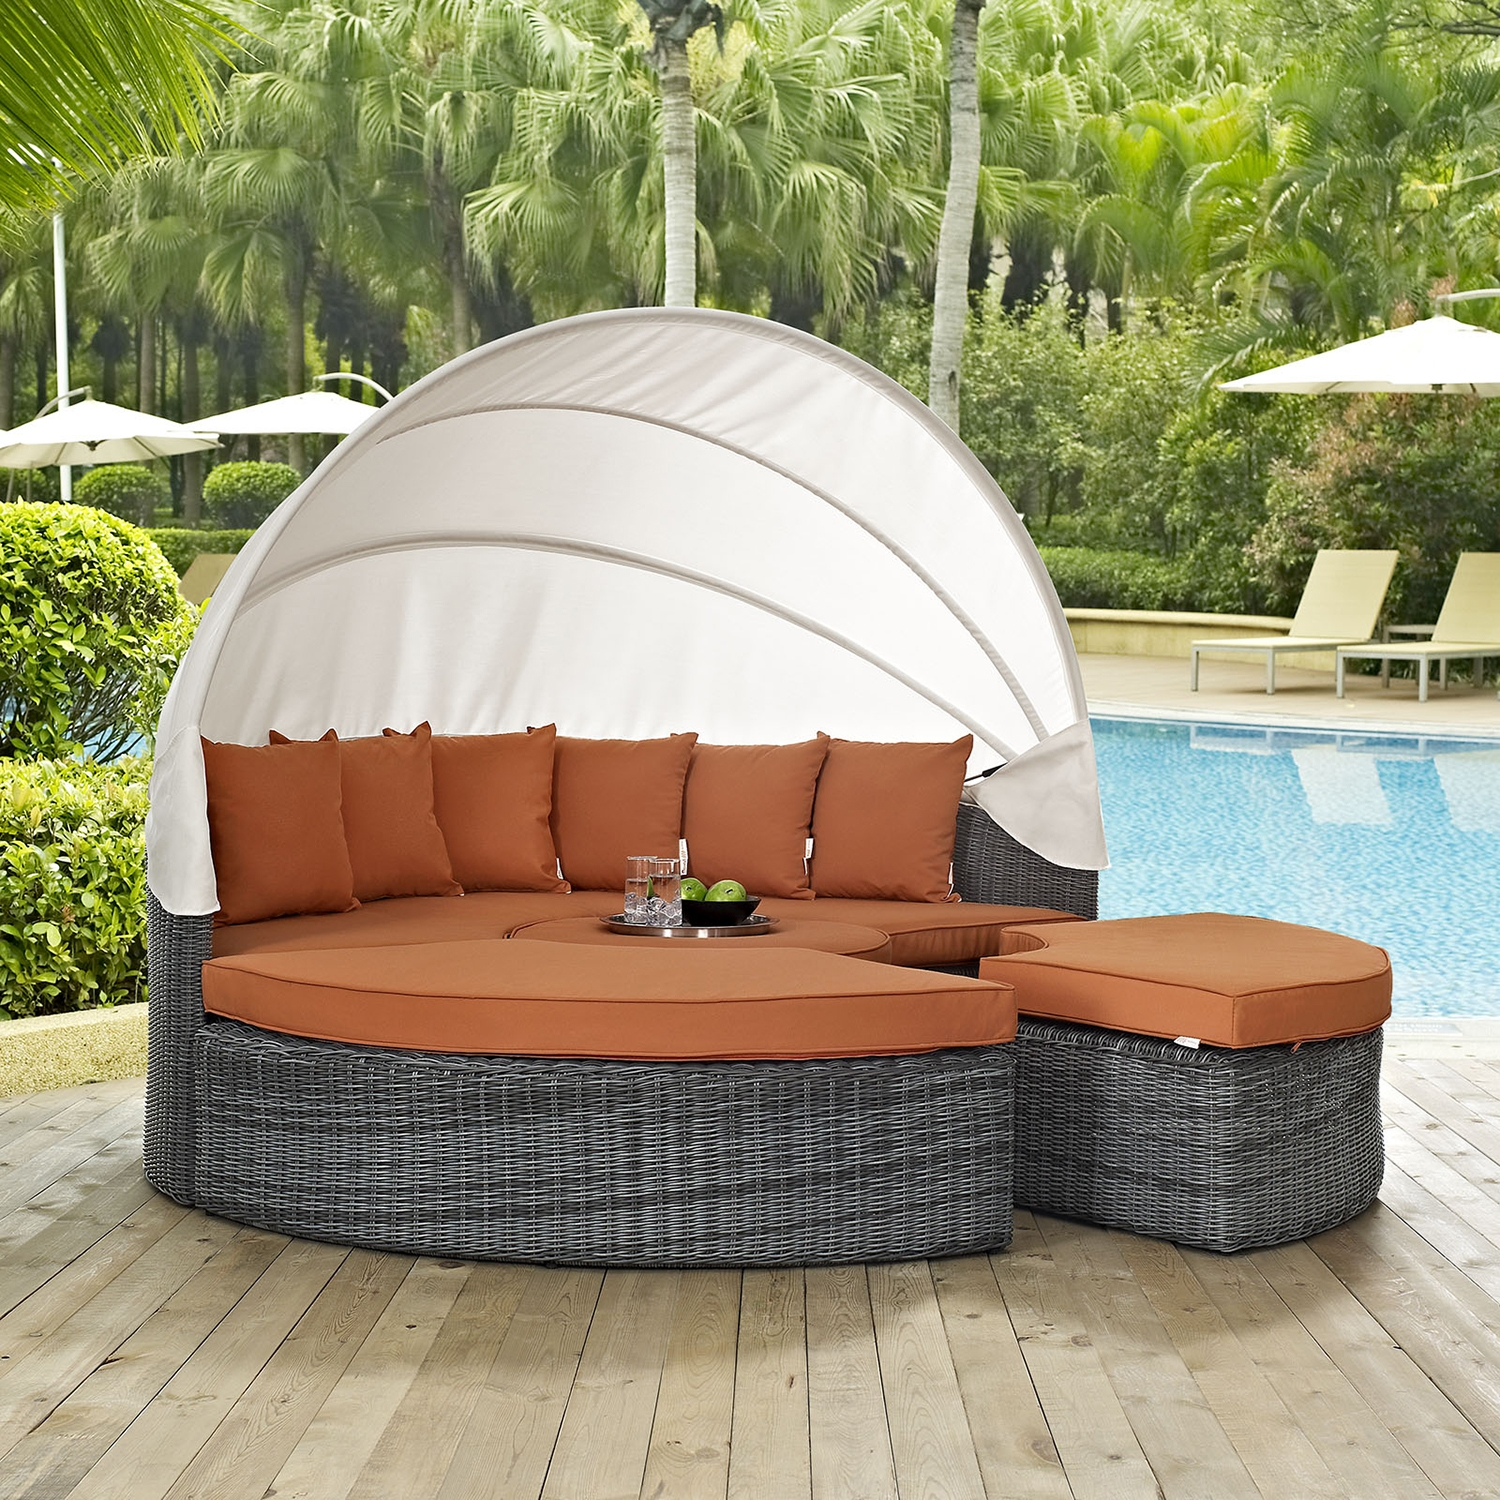 Summon Canopy Outdoor Patio Daybed - Sunbrella Canvas Tuscan - EEI-1997-GRY-TUS-SET